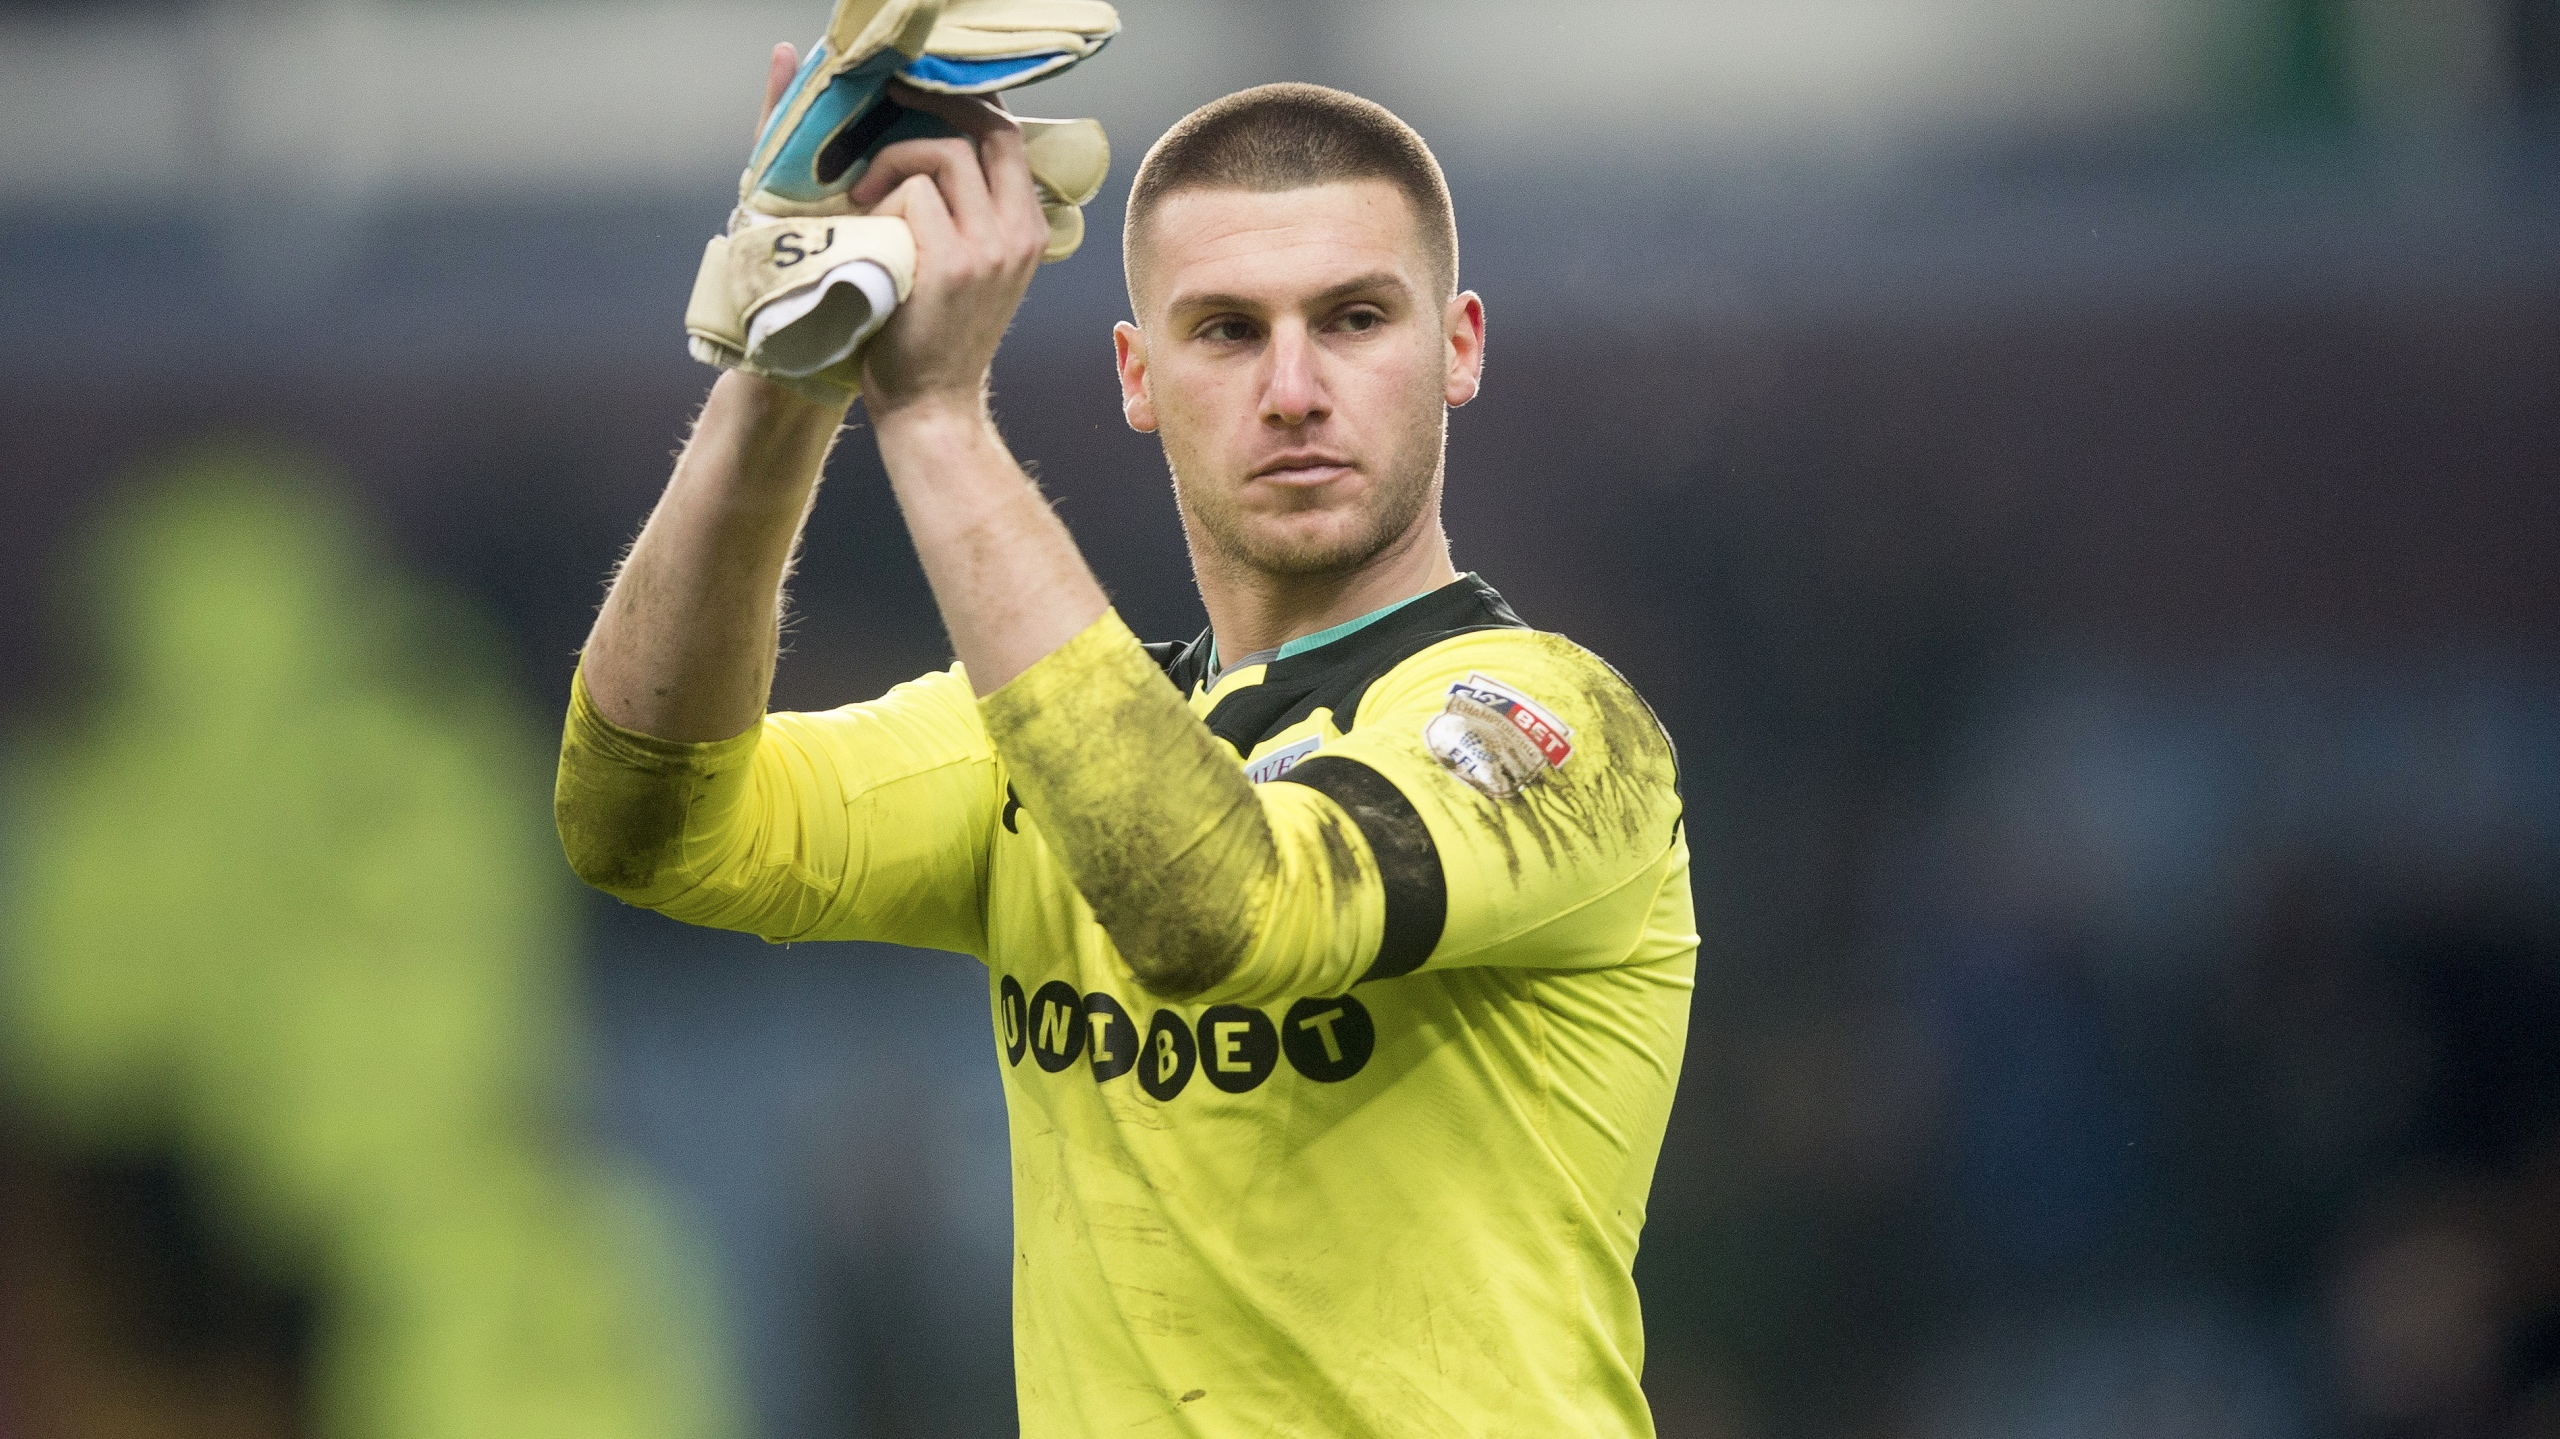 Tottenham Hotspur have been handed a boost in their pursuit of West Bromwich Albion goalkeeper Sam Johnstone.